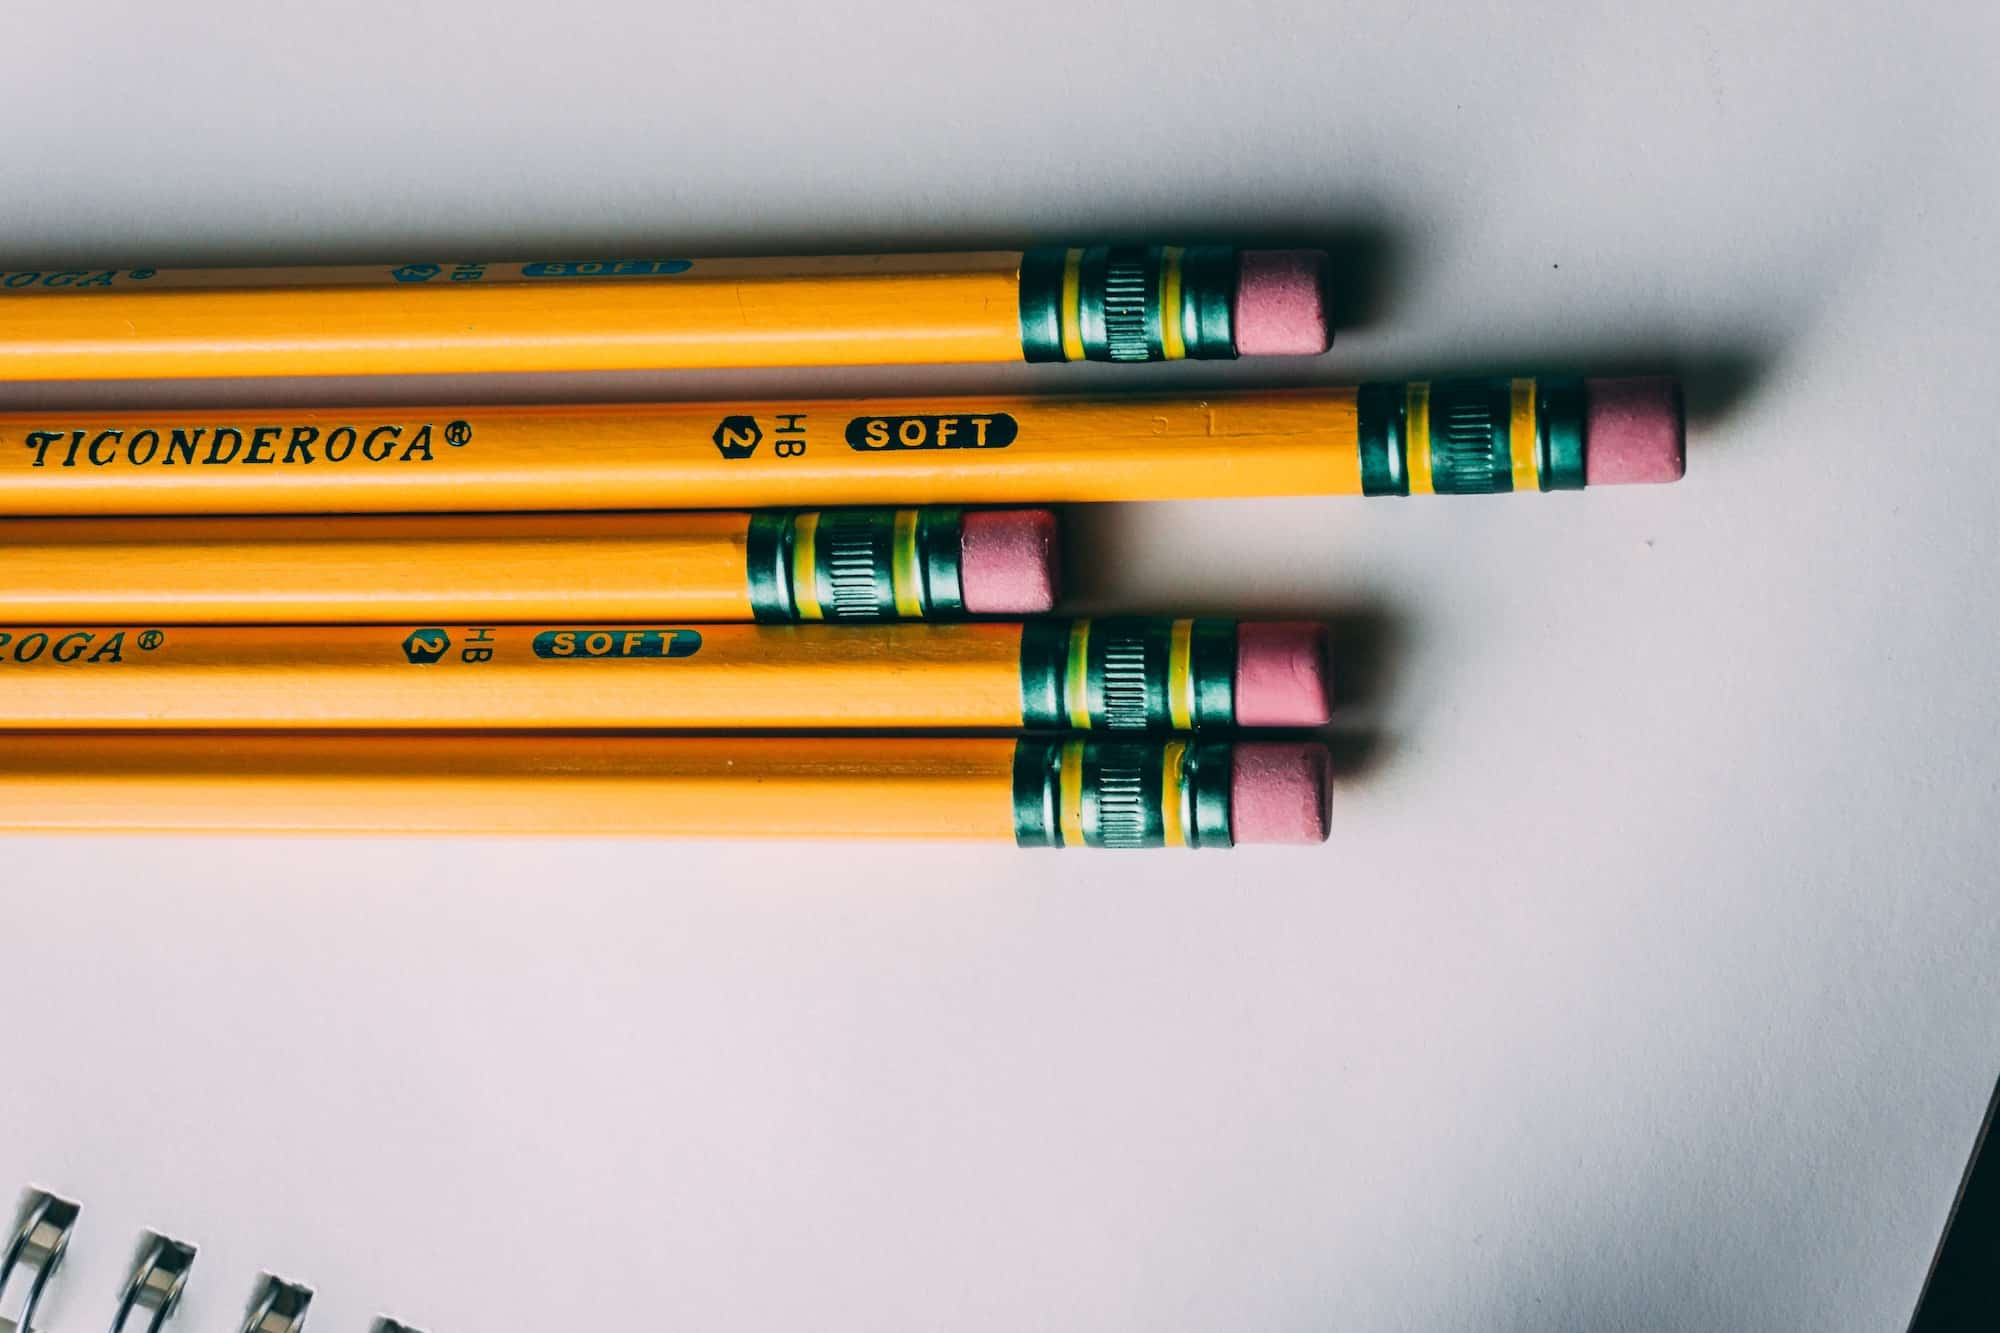 Five pencils on a blank notebook